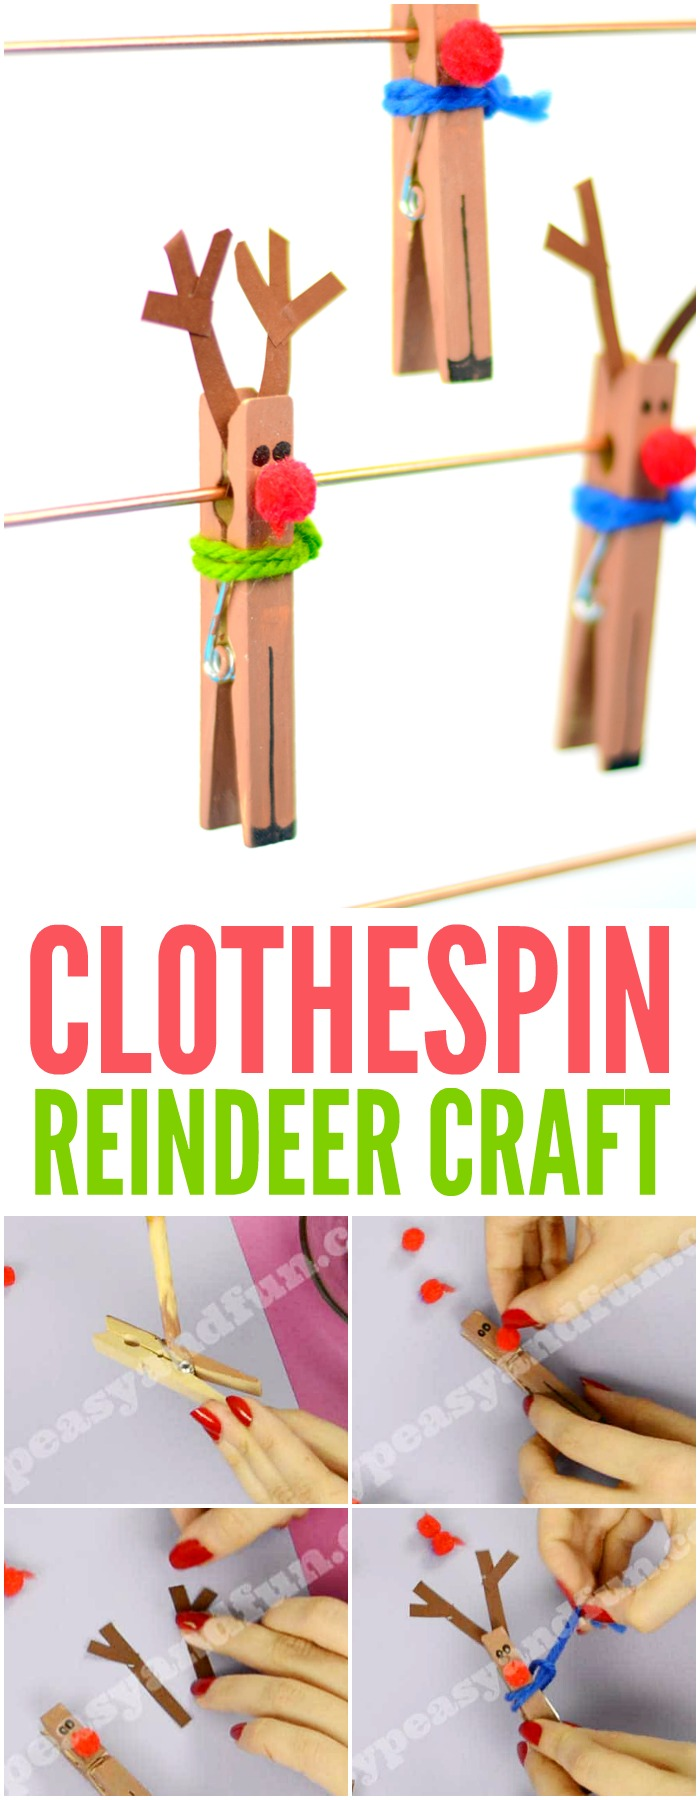 Clothespin Reindeer Craft for Kids. Super fun and simple Christmas craft idea for kids to make.